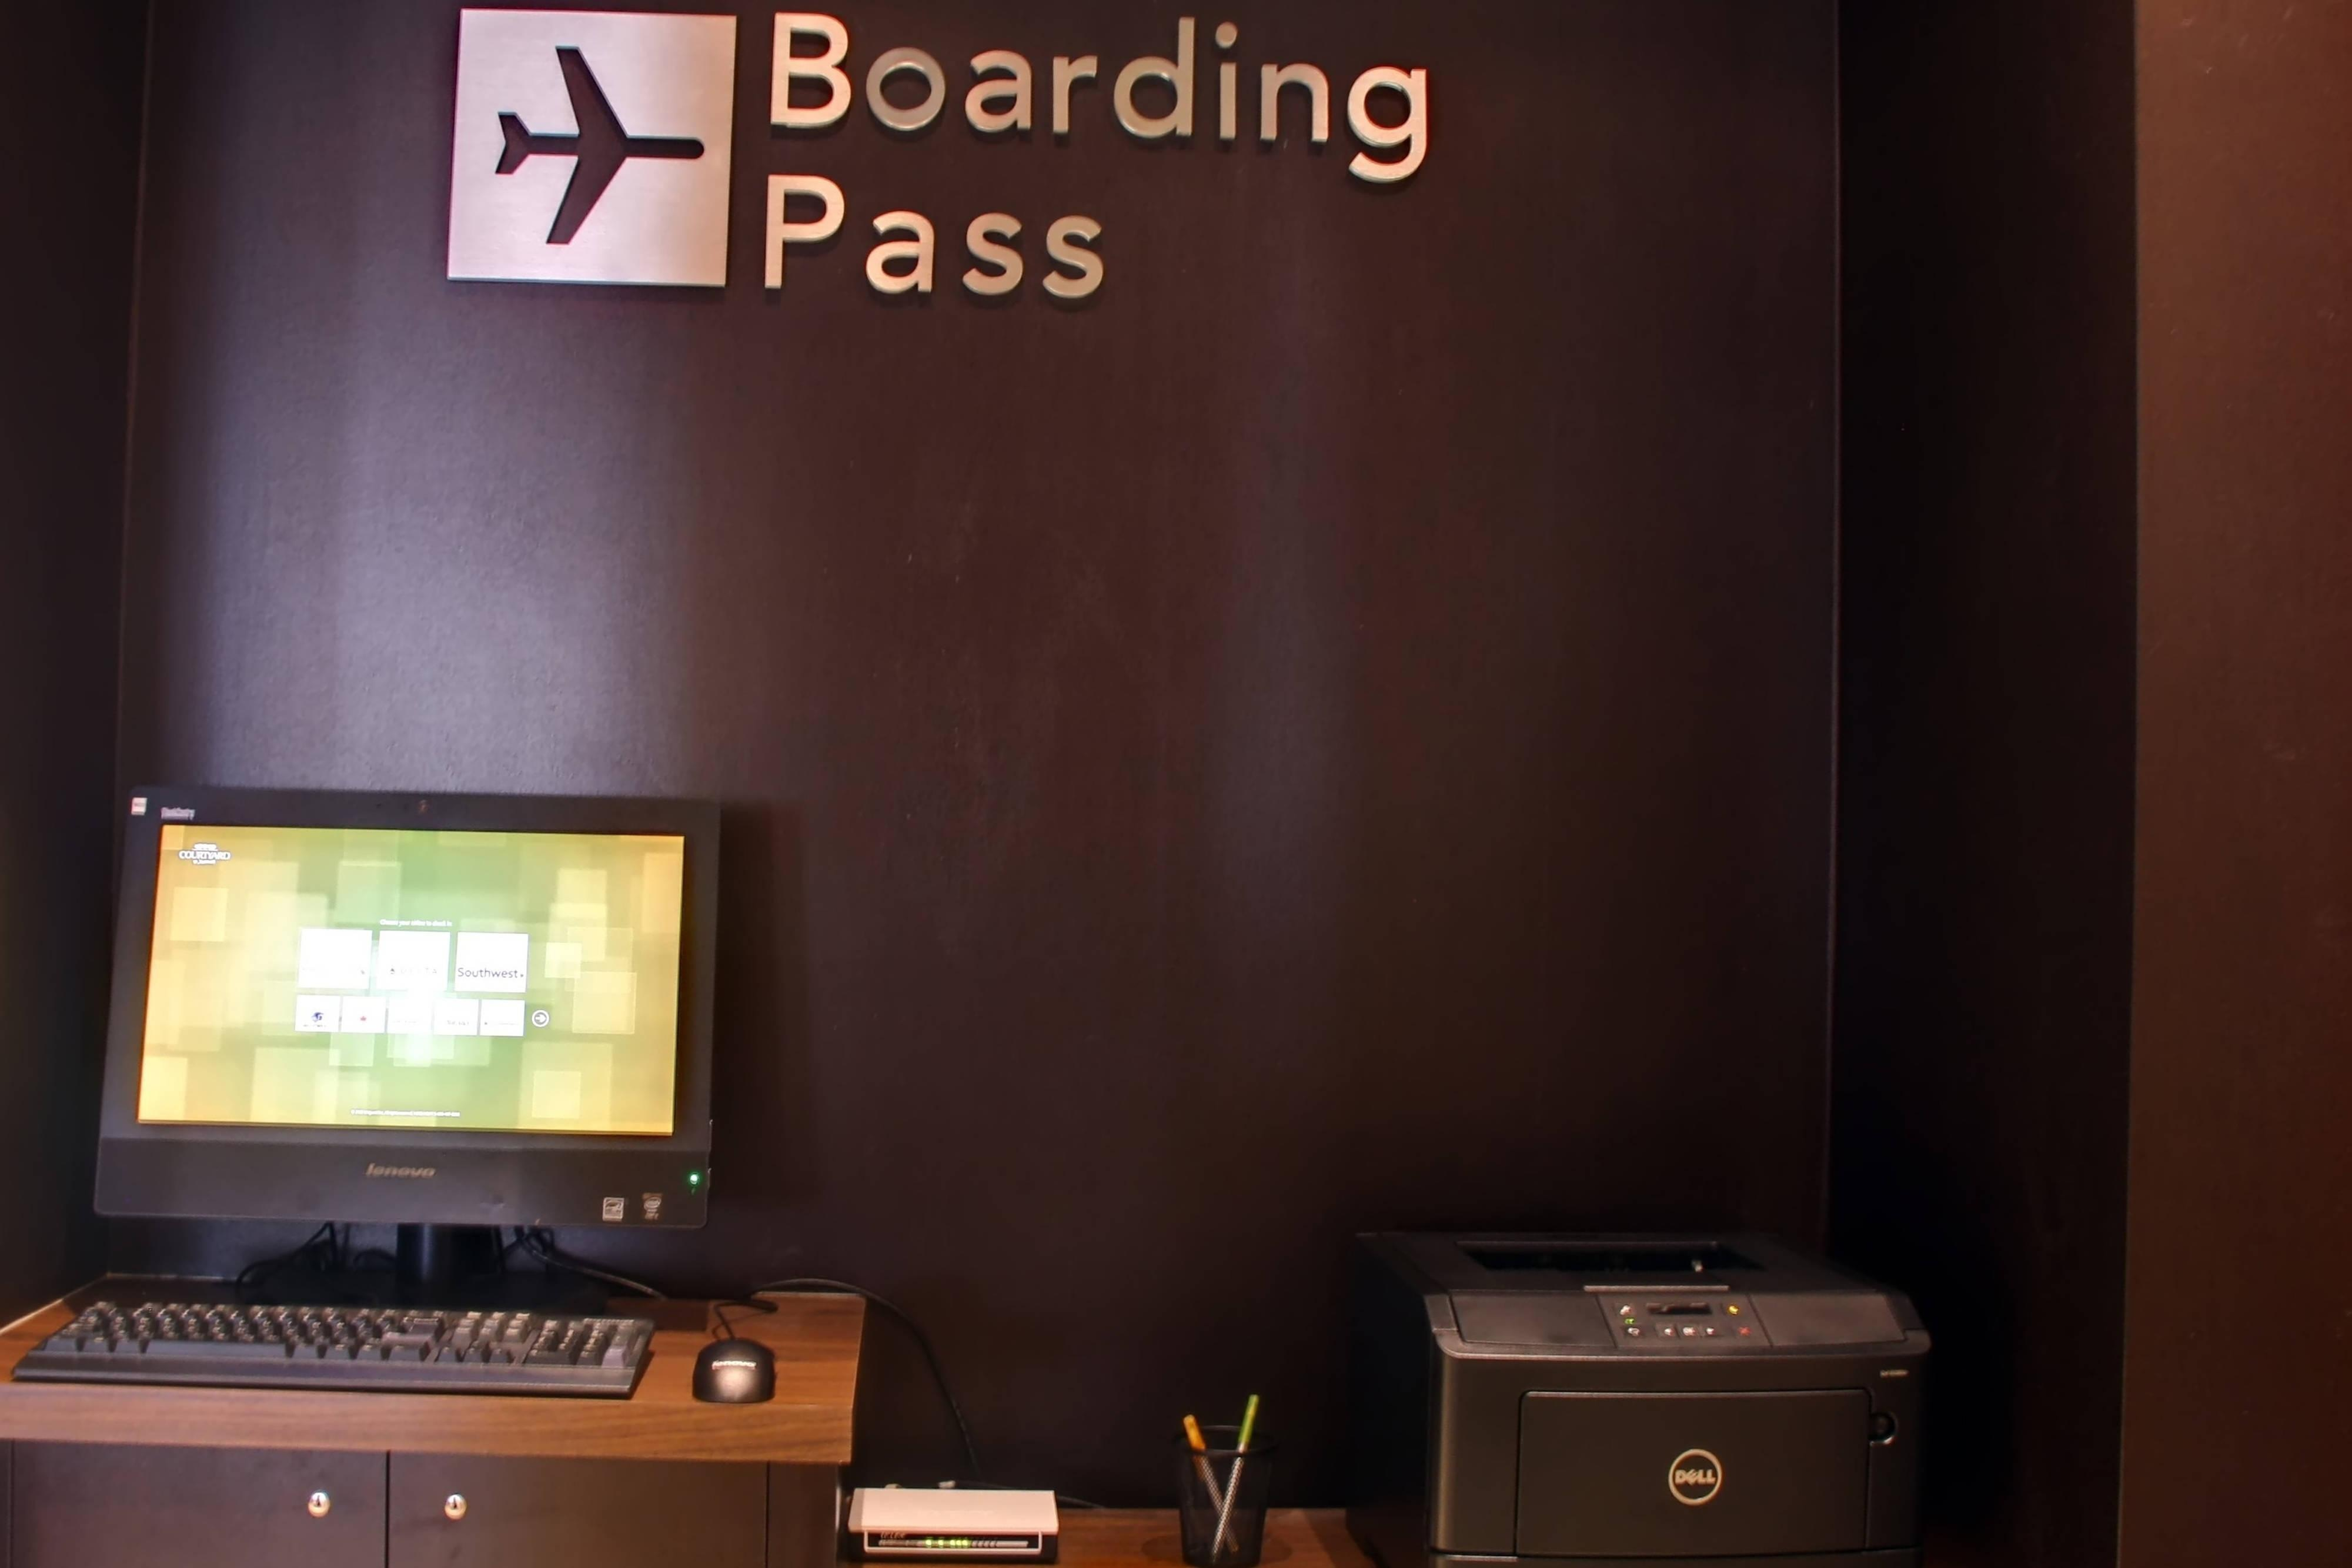 Boarding Pass Print Station